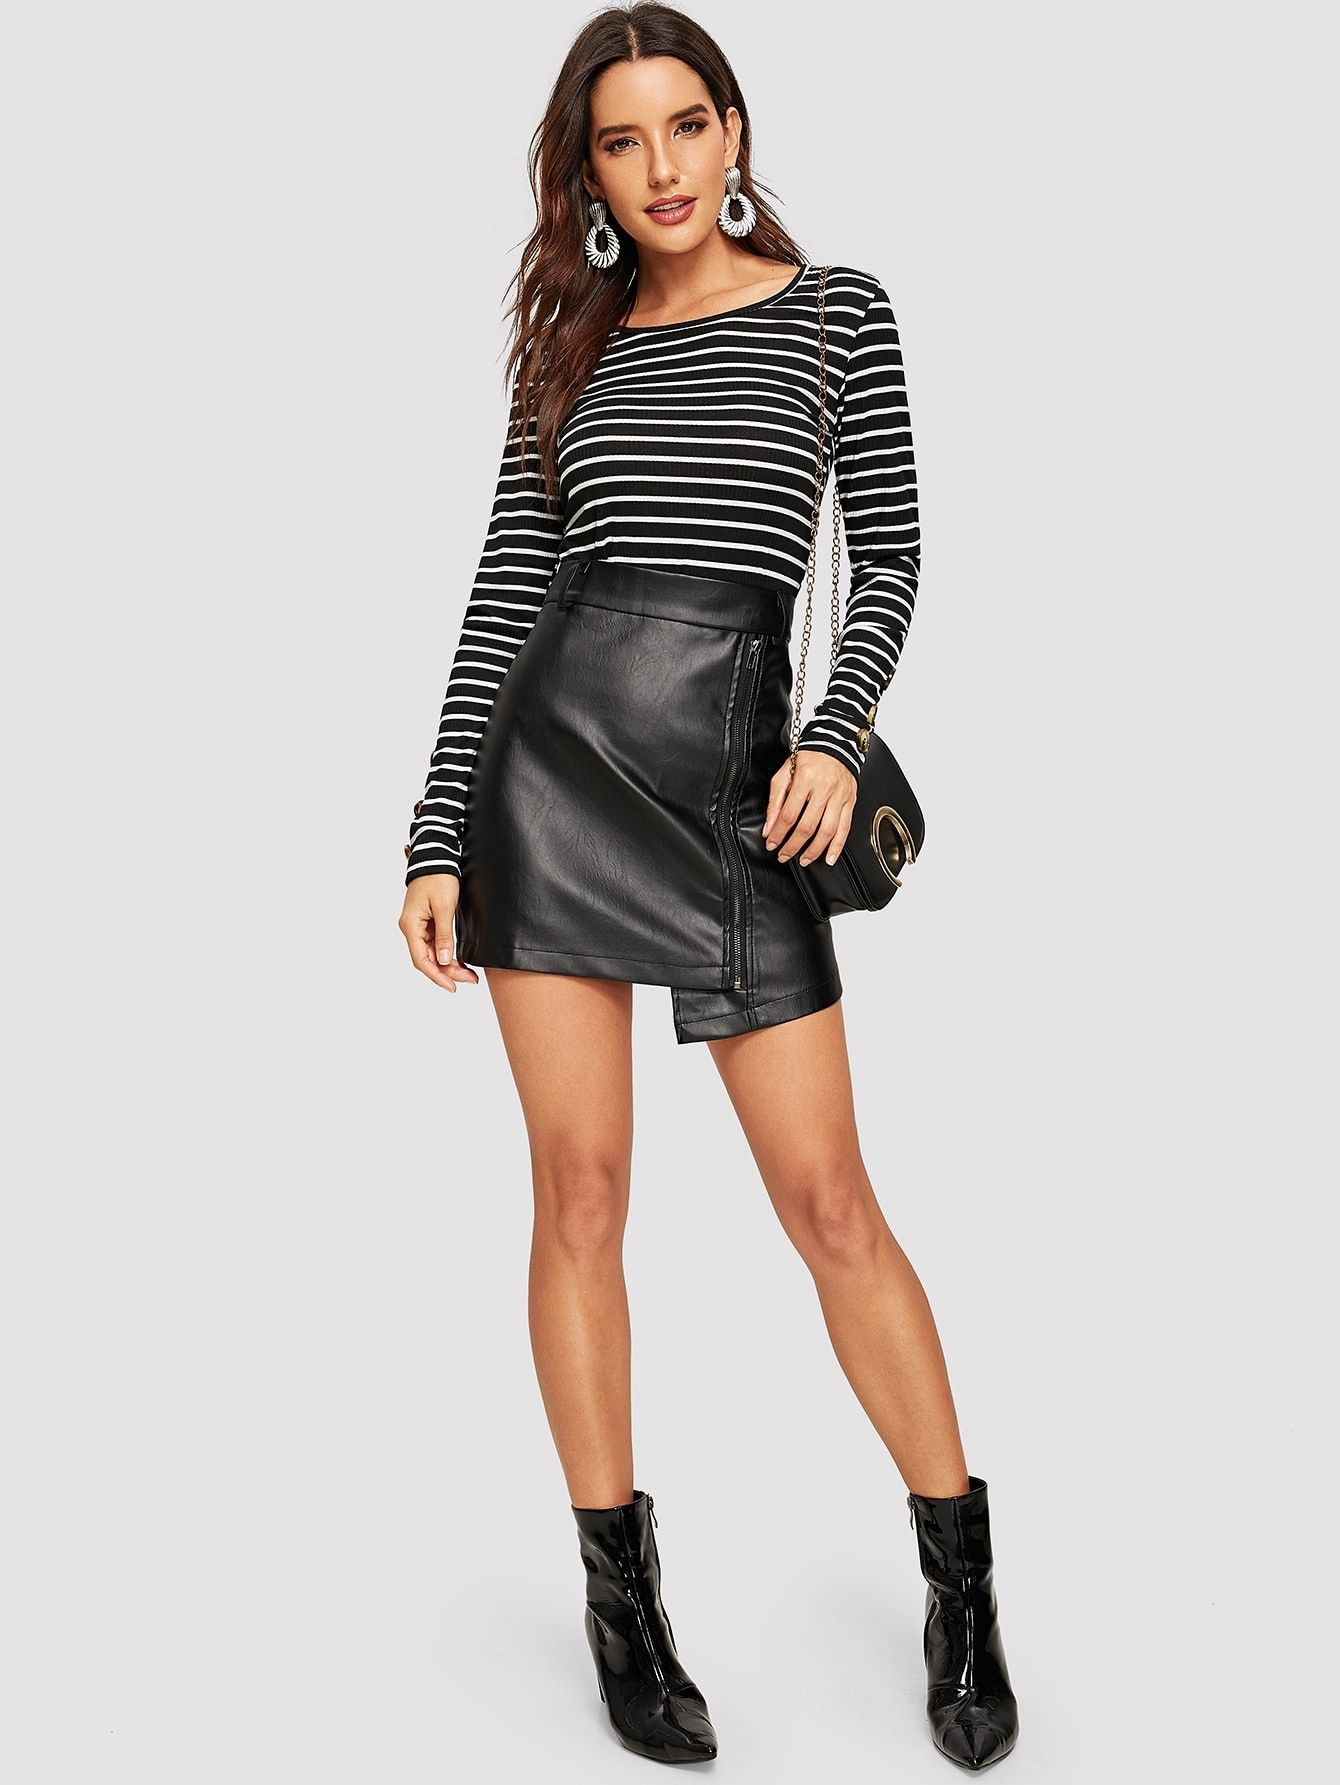 0707bda387 Casual Striped Regular Fit Round Neck Long Sleeve Pullovers Black Regular  Length Button Detail Form Fitted Striped Tee